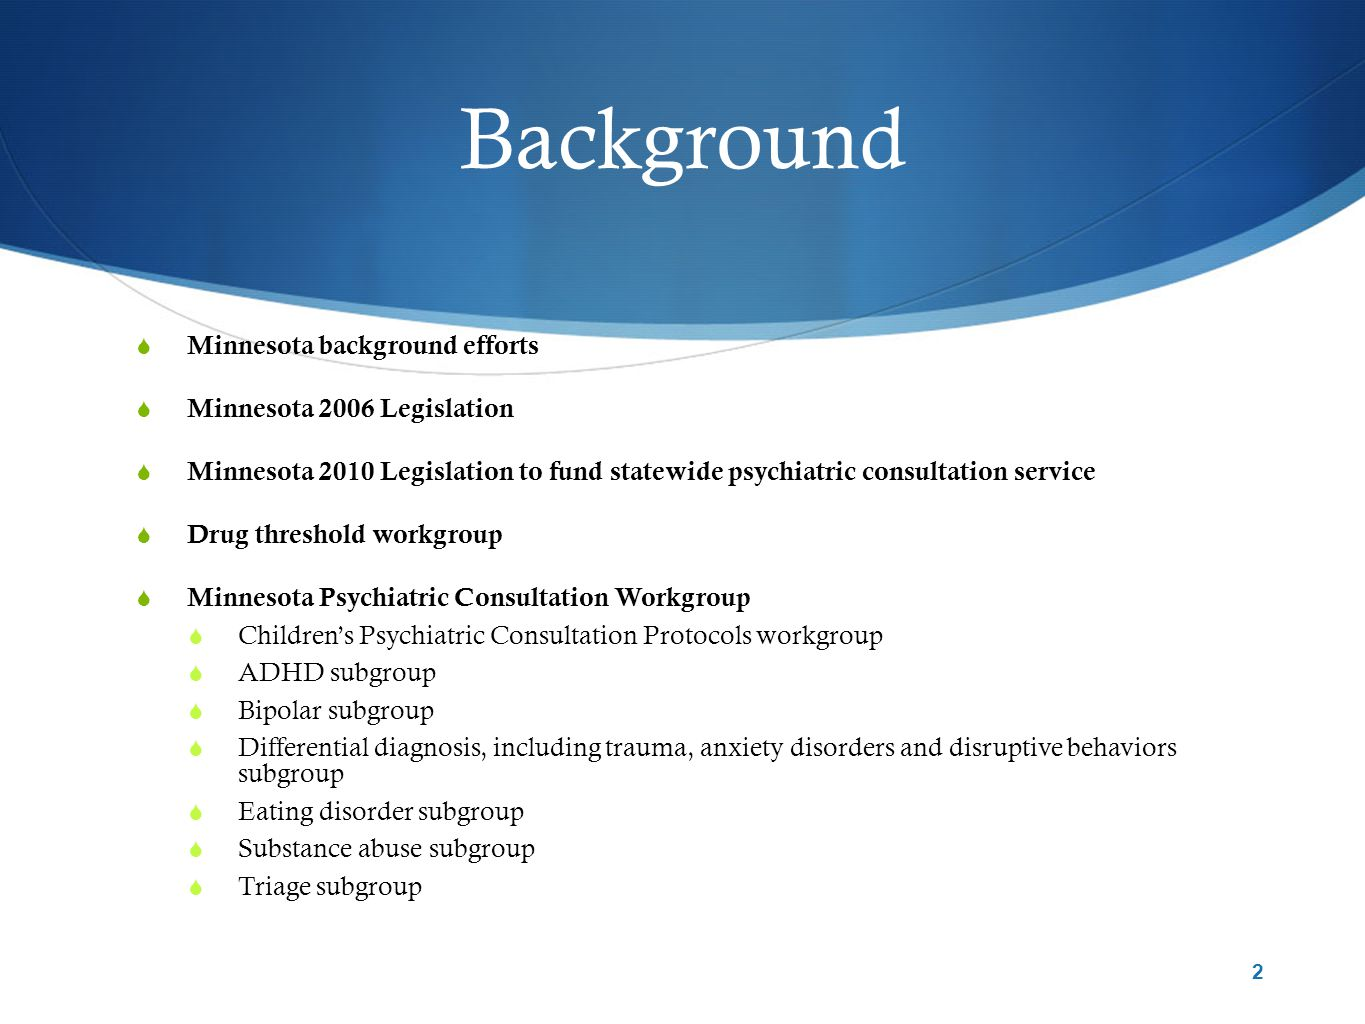 Background  Minnesota background efforts  Minnesota 2006 Legislation  Minnesota 2010 Legislation to fund statewide psychiatric consultation service  Drug threshold workgroup  Minnesota Psychiatric Consultation Workgroup  Children's Psychiatric Consultation Protocols workgroup  ADHD subgroup  Bipolar subgroup  Differential diagnosis, including trauma, anxiety disorders and disruptive behaviors subgroup  Eating disorder subgroup  Substance abuse subgroup  Triage subgroup 2